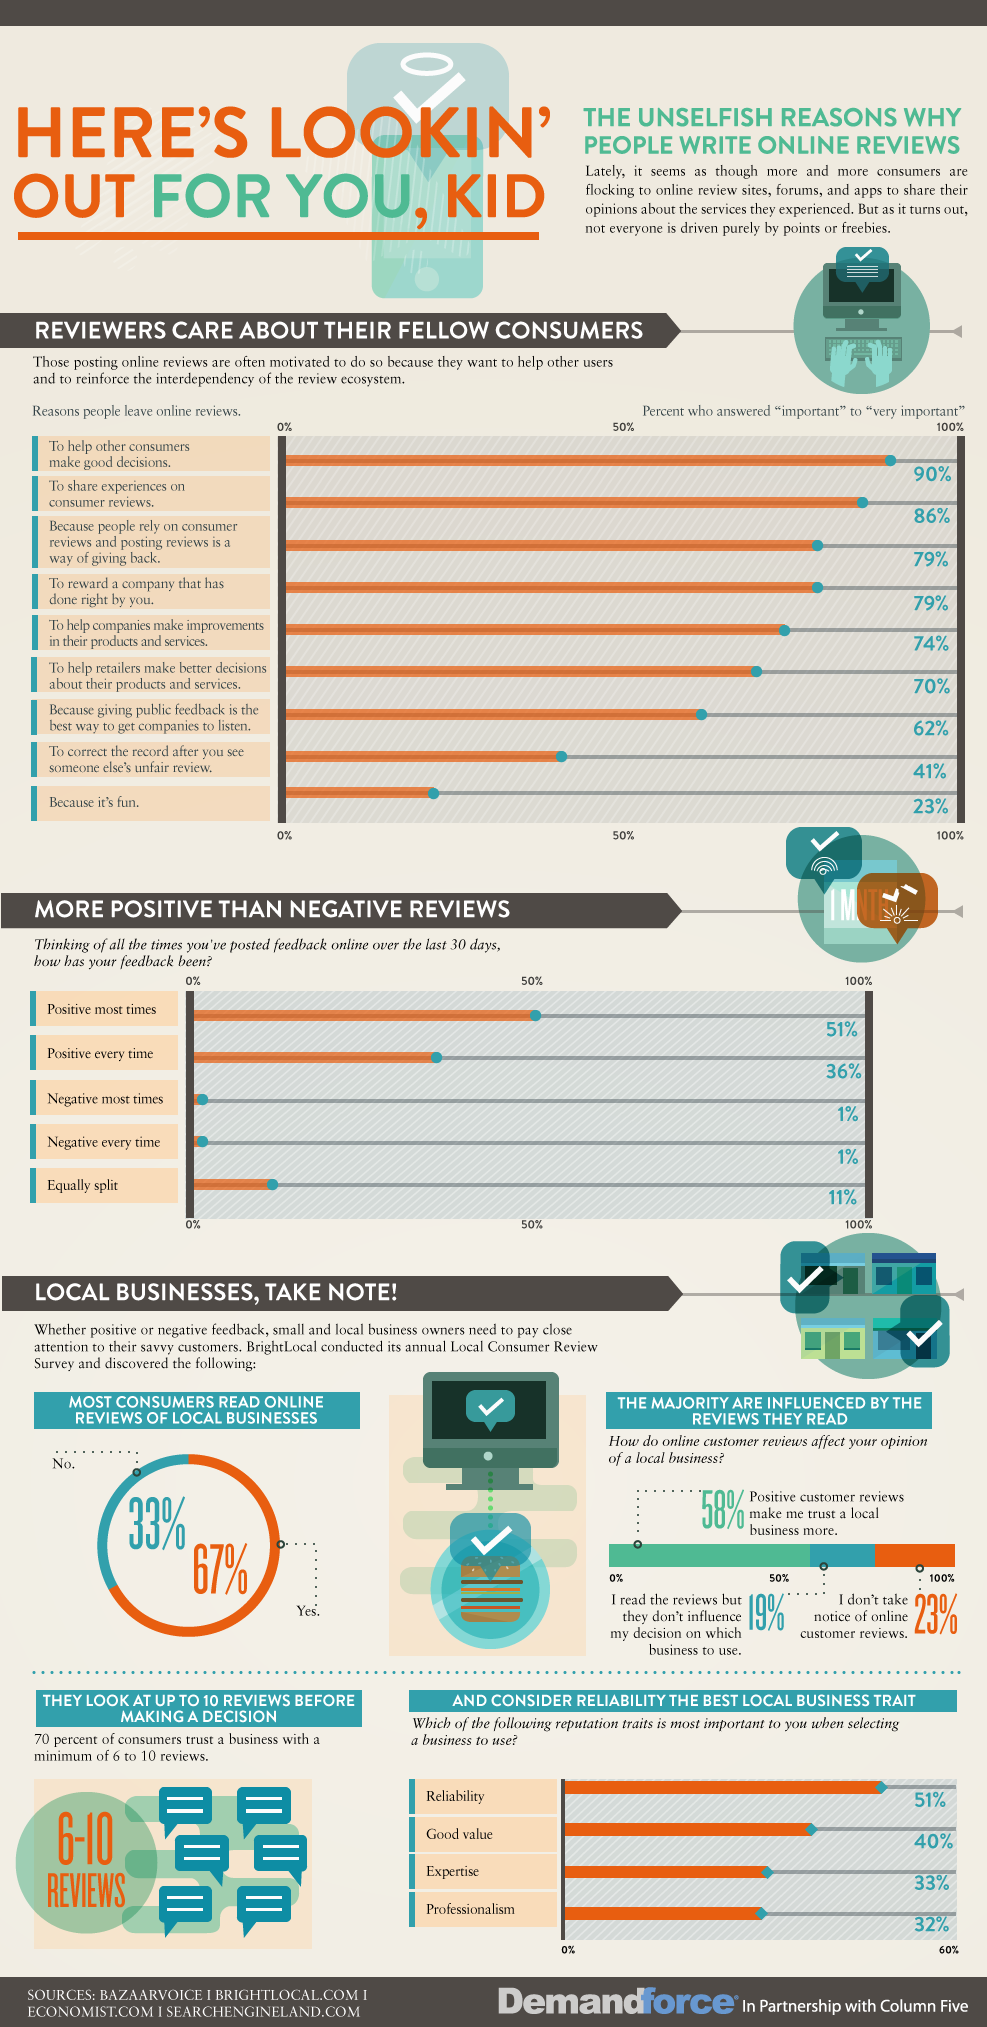 Unselfish-Online-Reviews-infographic